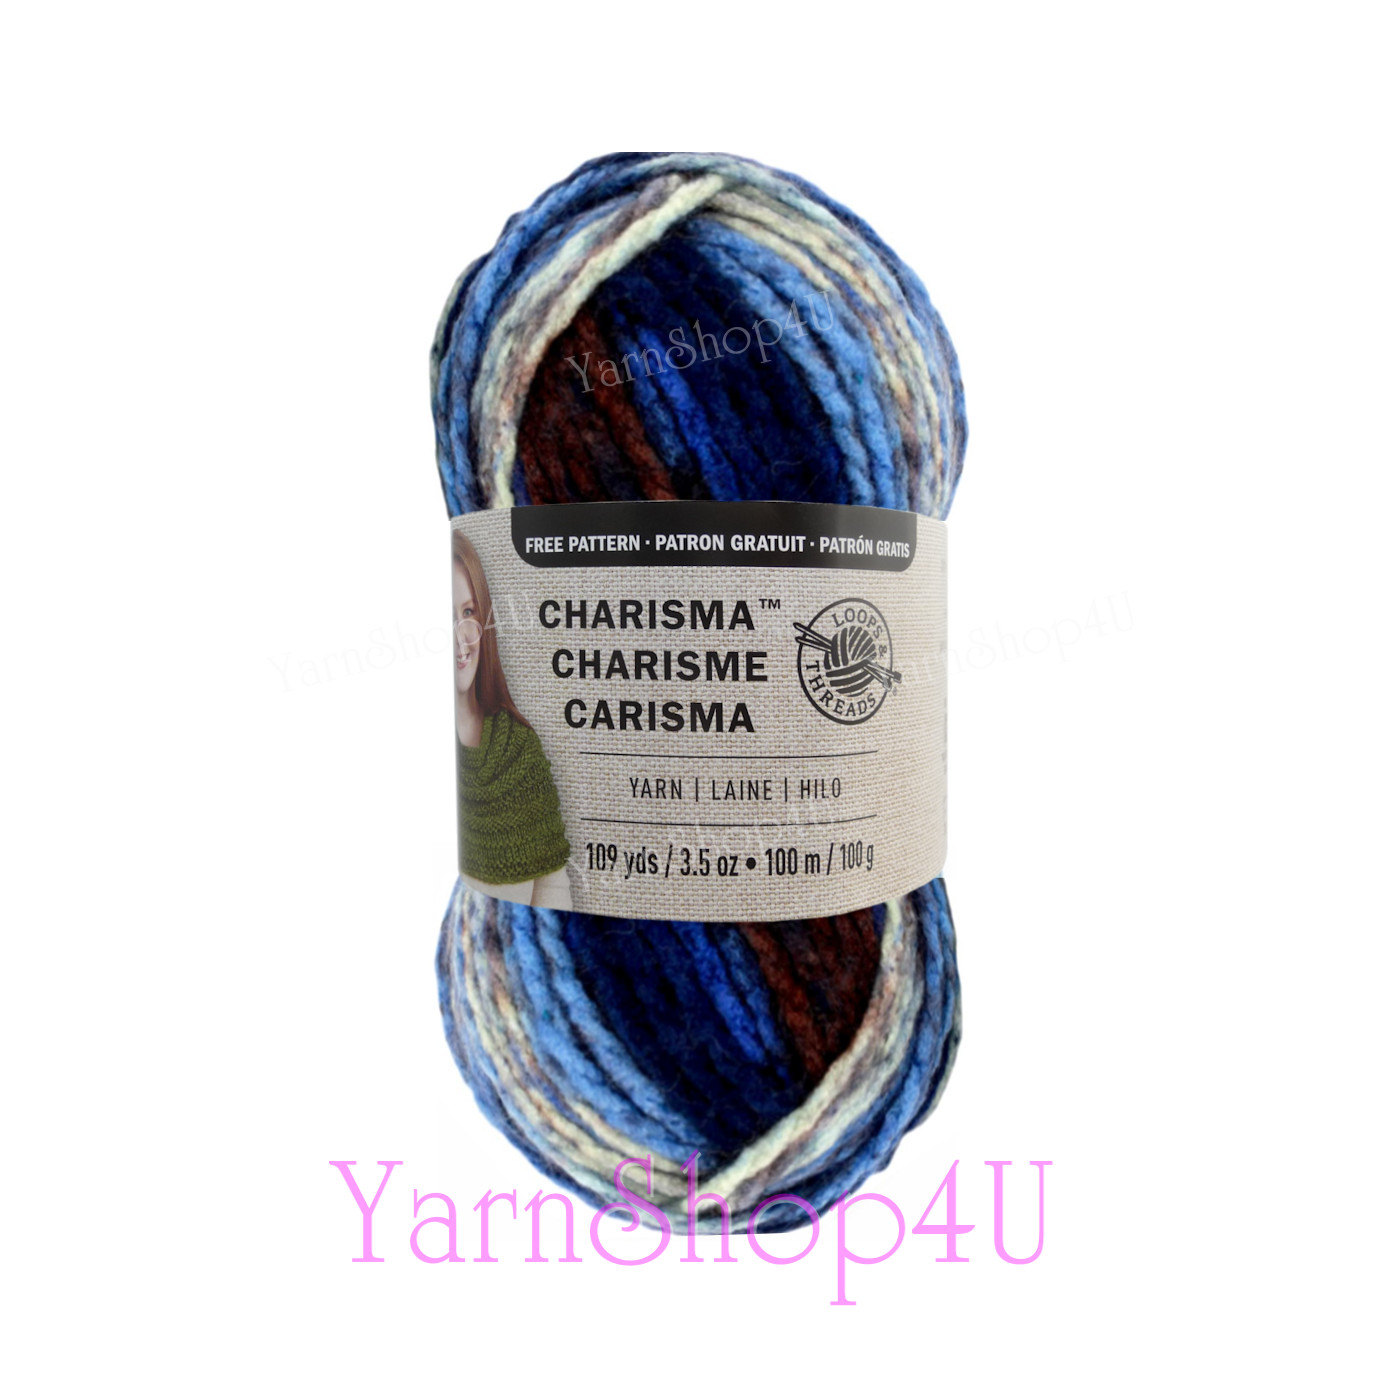 LAKESIDE Bulky Charisma Loops and Threads Yarn. This Blue, Brown ...